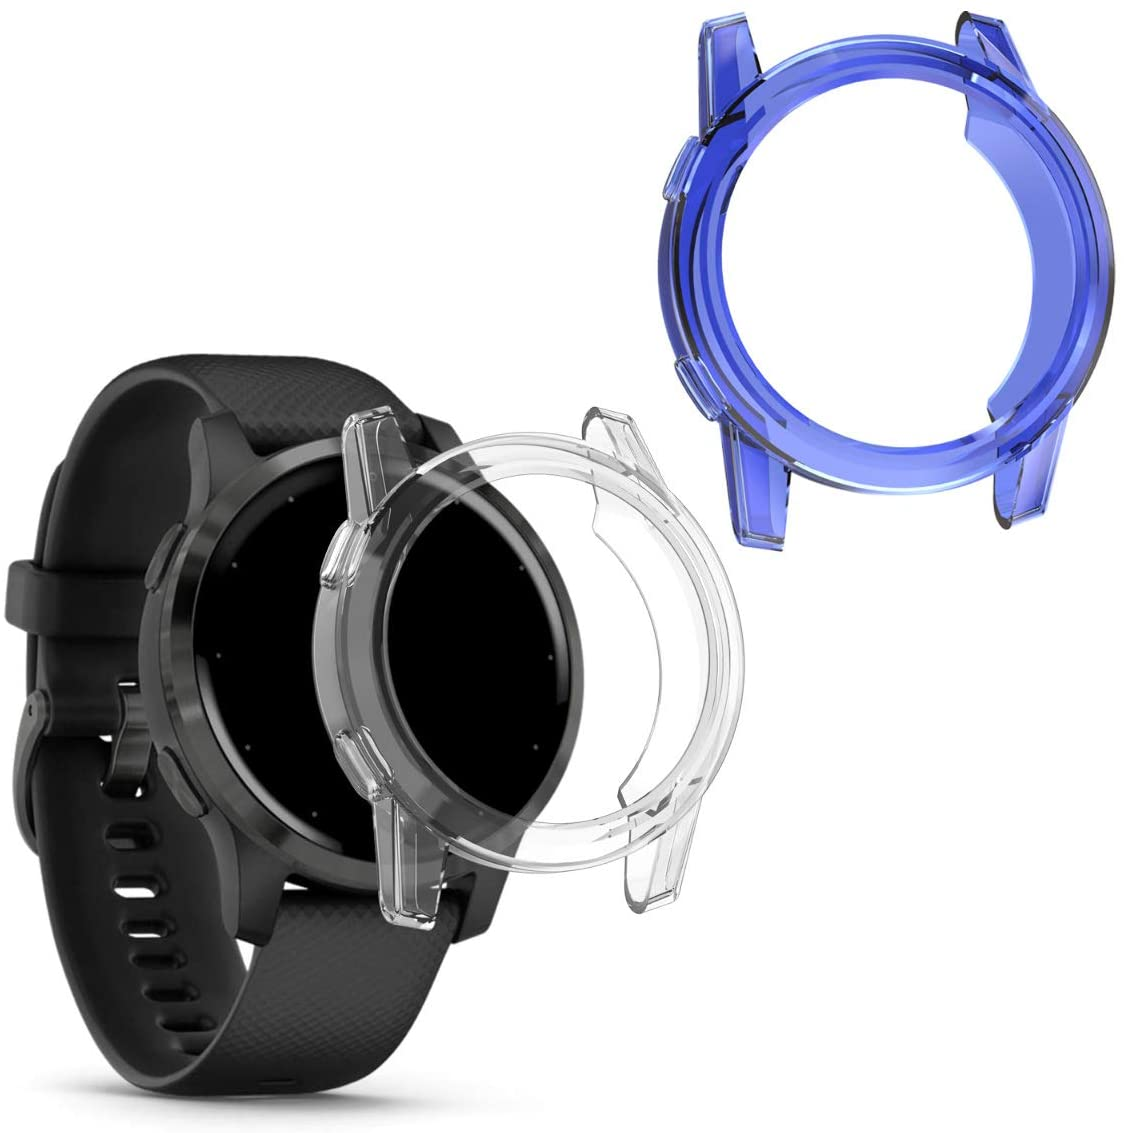 kwmobile 2-Pack Fitness Tracker Frame Compatible with Garmin Vivoactive 4S - Sport Tracker Accessory TPU Silicone Case - Transparent/Blue/Transparent